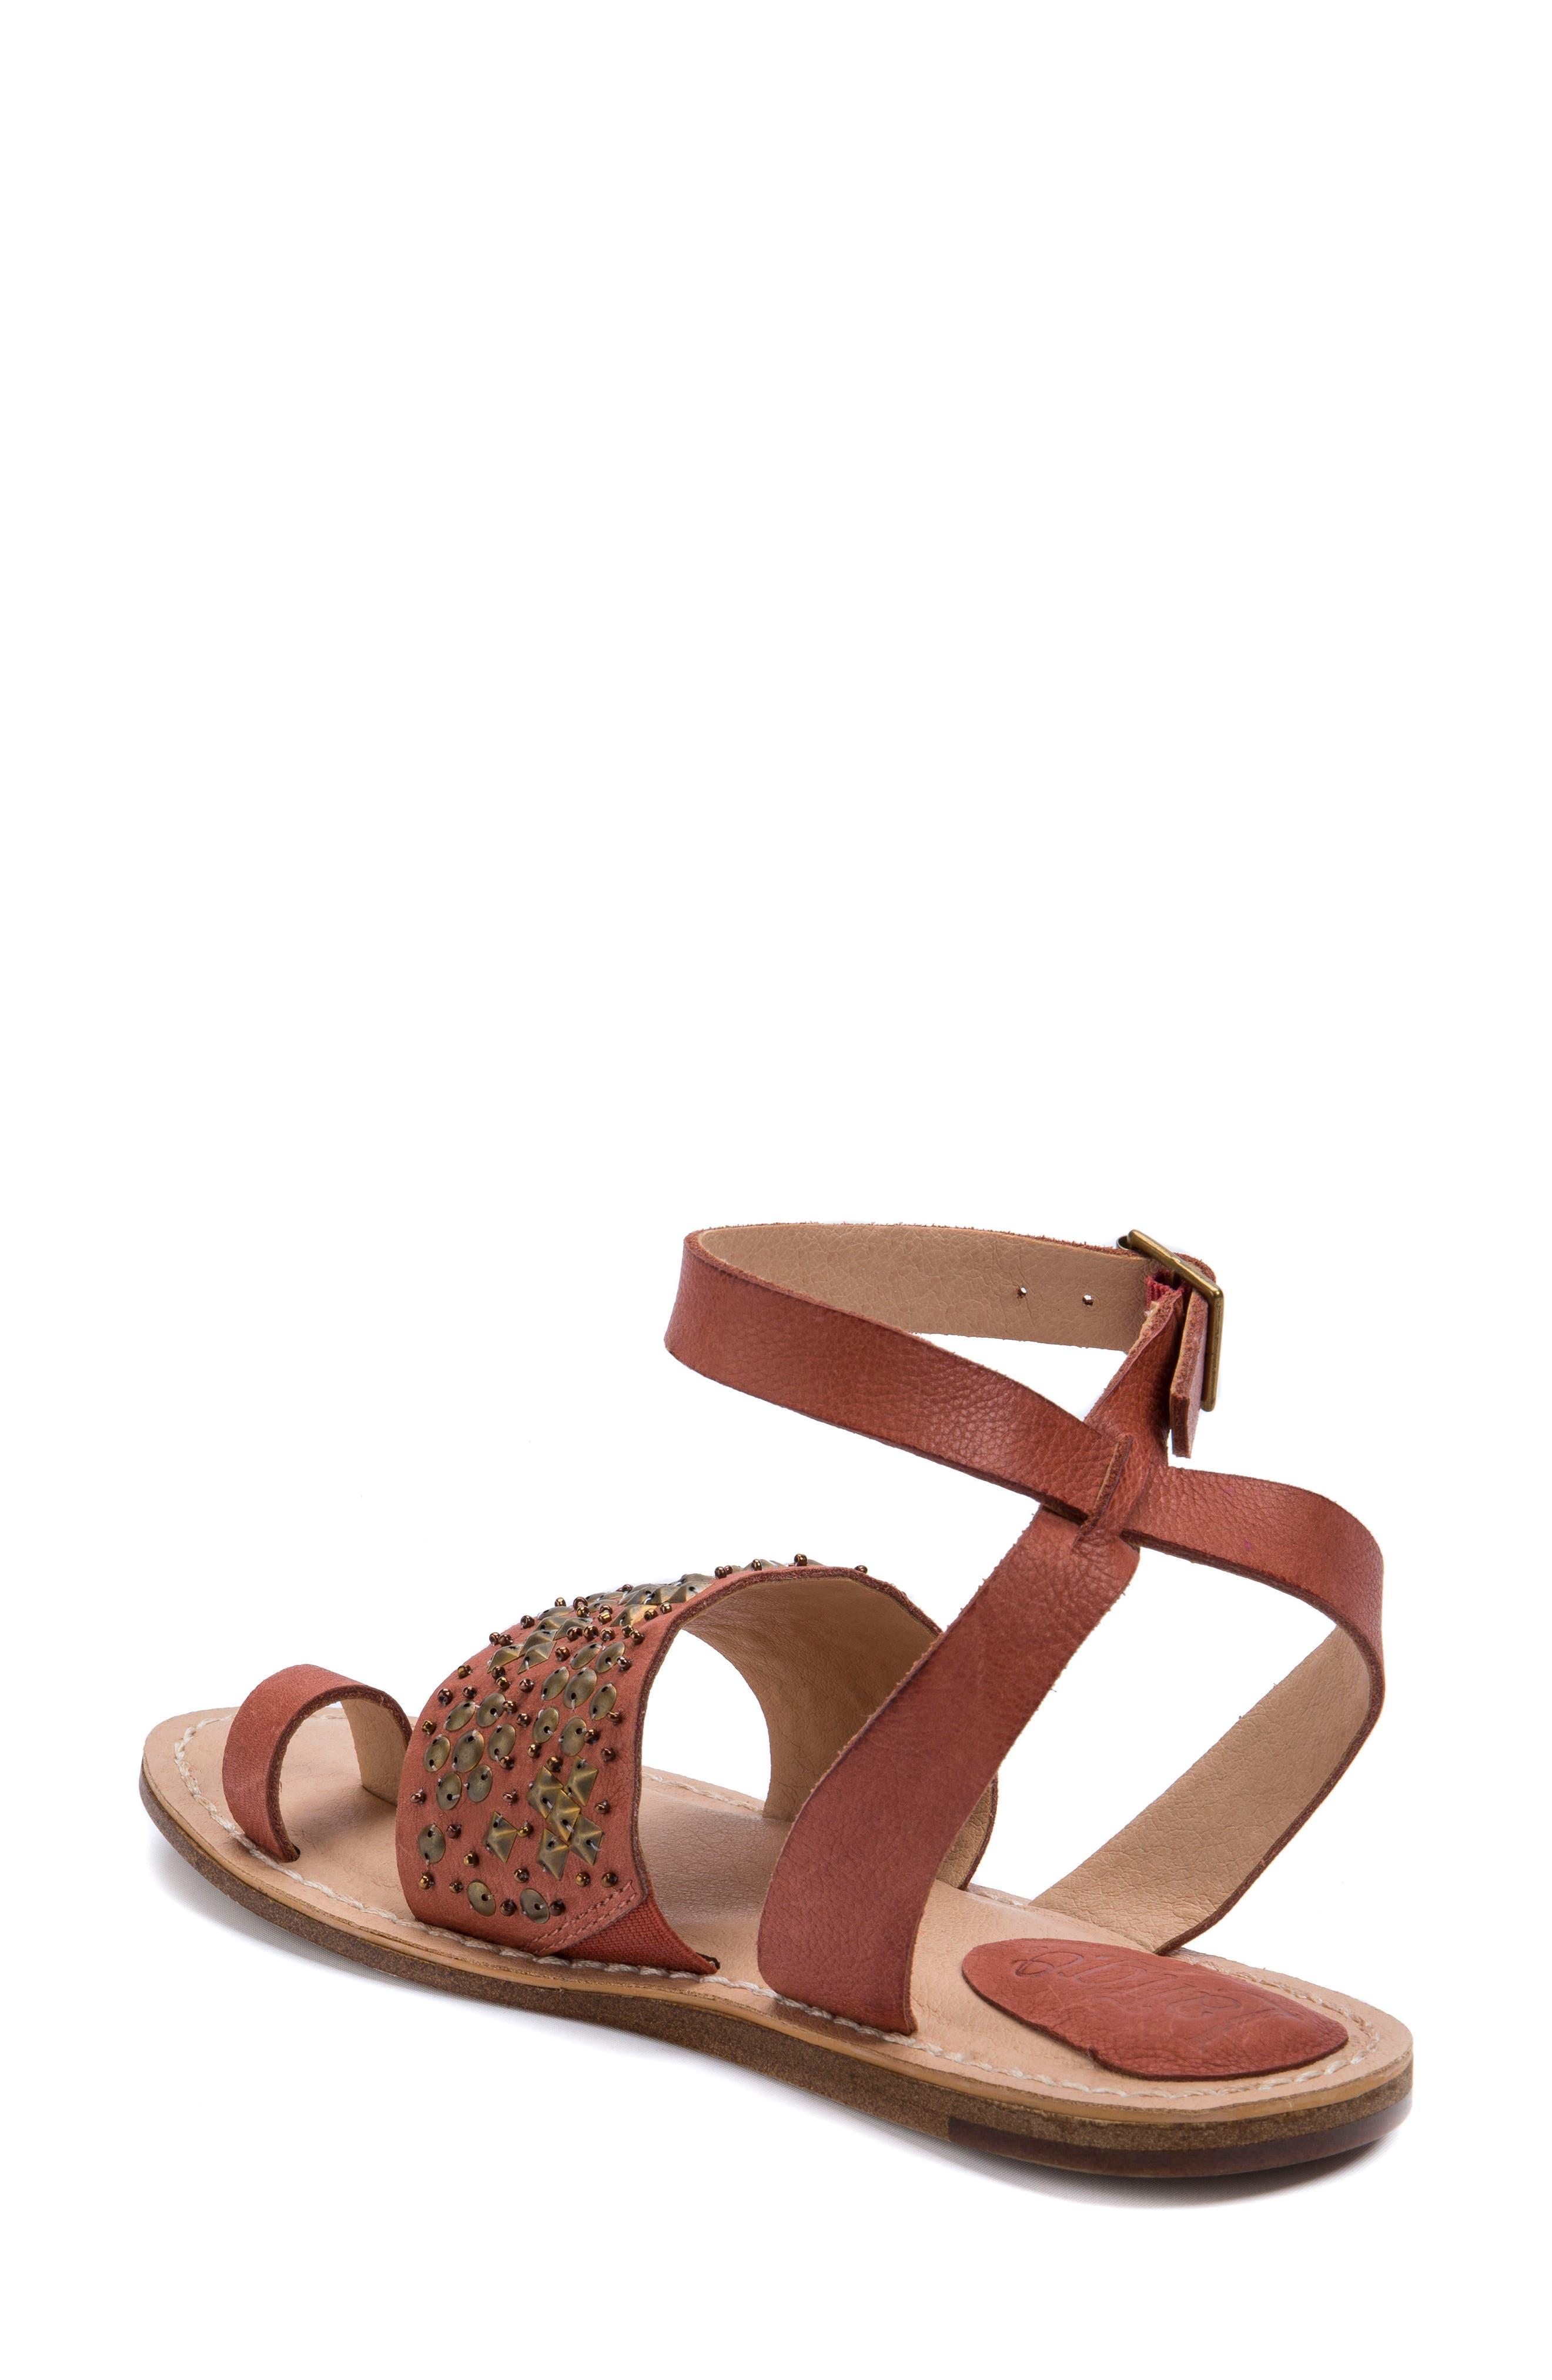 Vera Embellished Sandal,                             Alternate thumbnail 6, color,